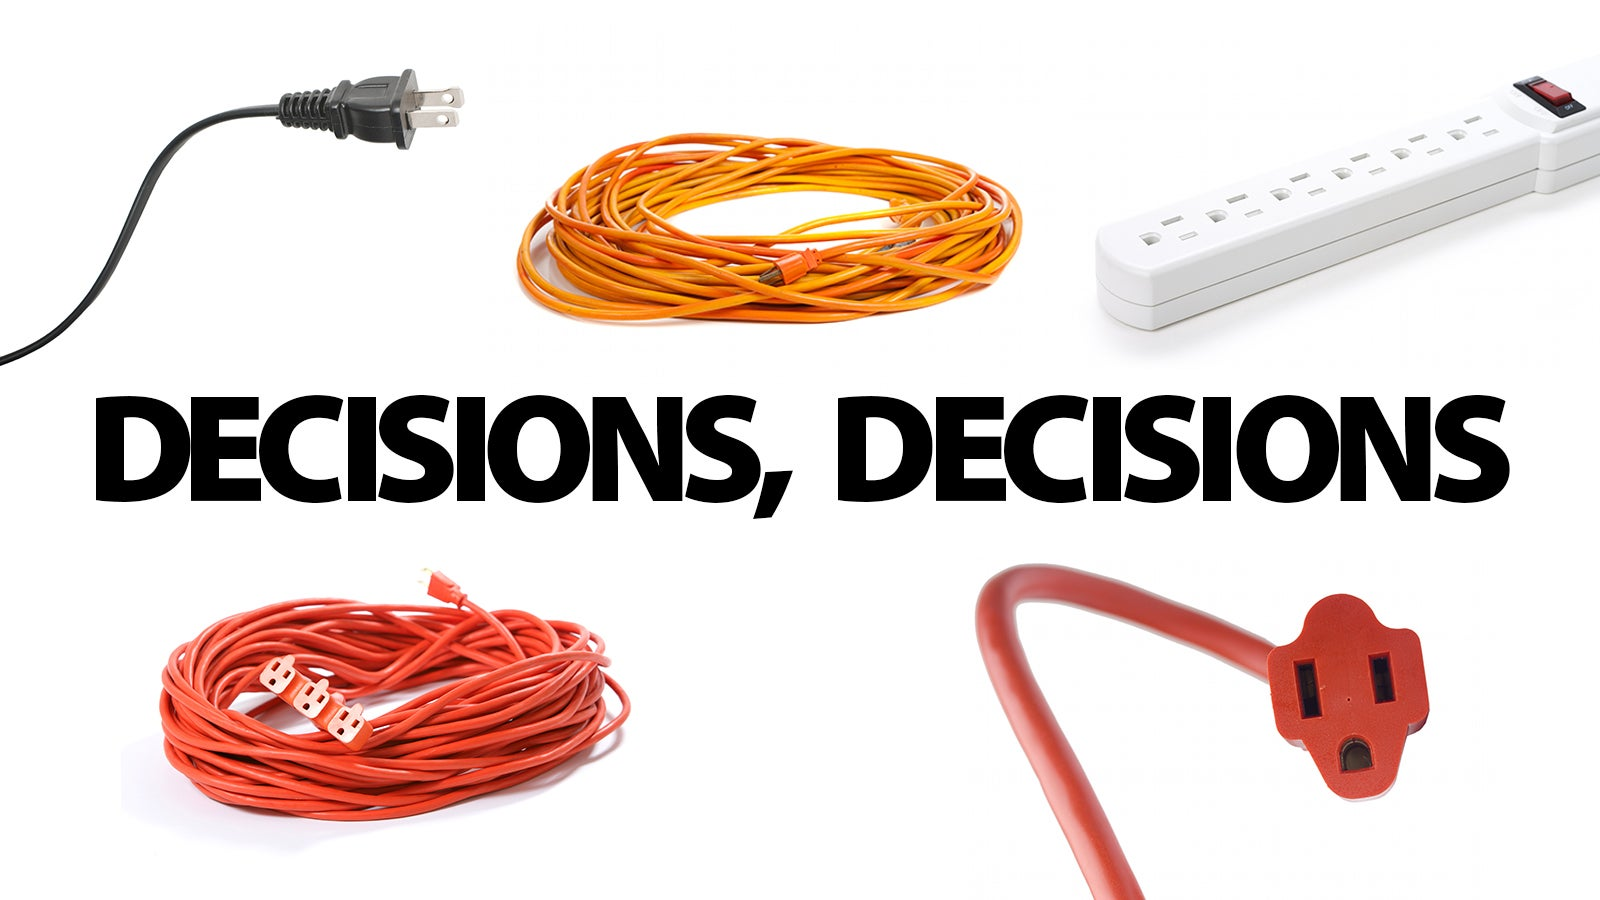 how to choose the right extension cord for anything rh gizmodo com Heavy Duty Extension Cords 50 10-Gauge Extension Cords Home Depot